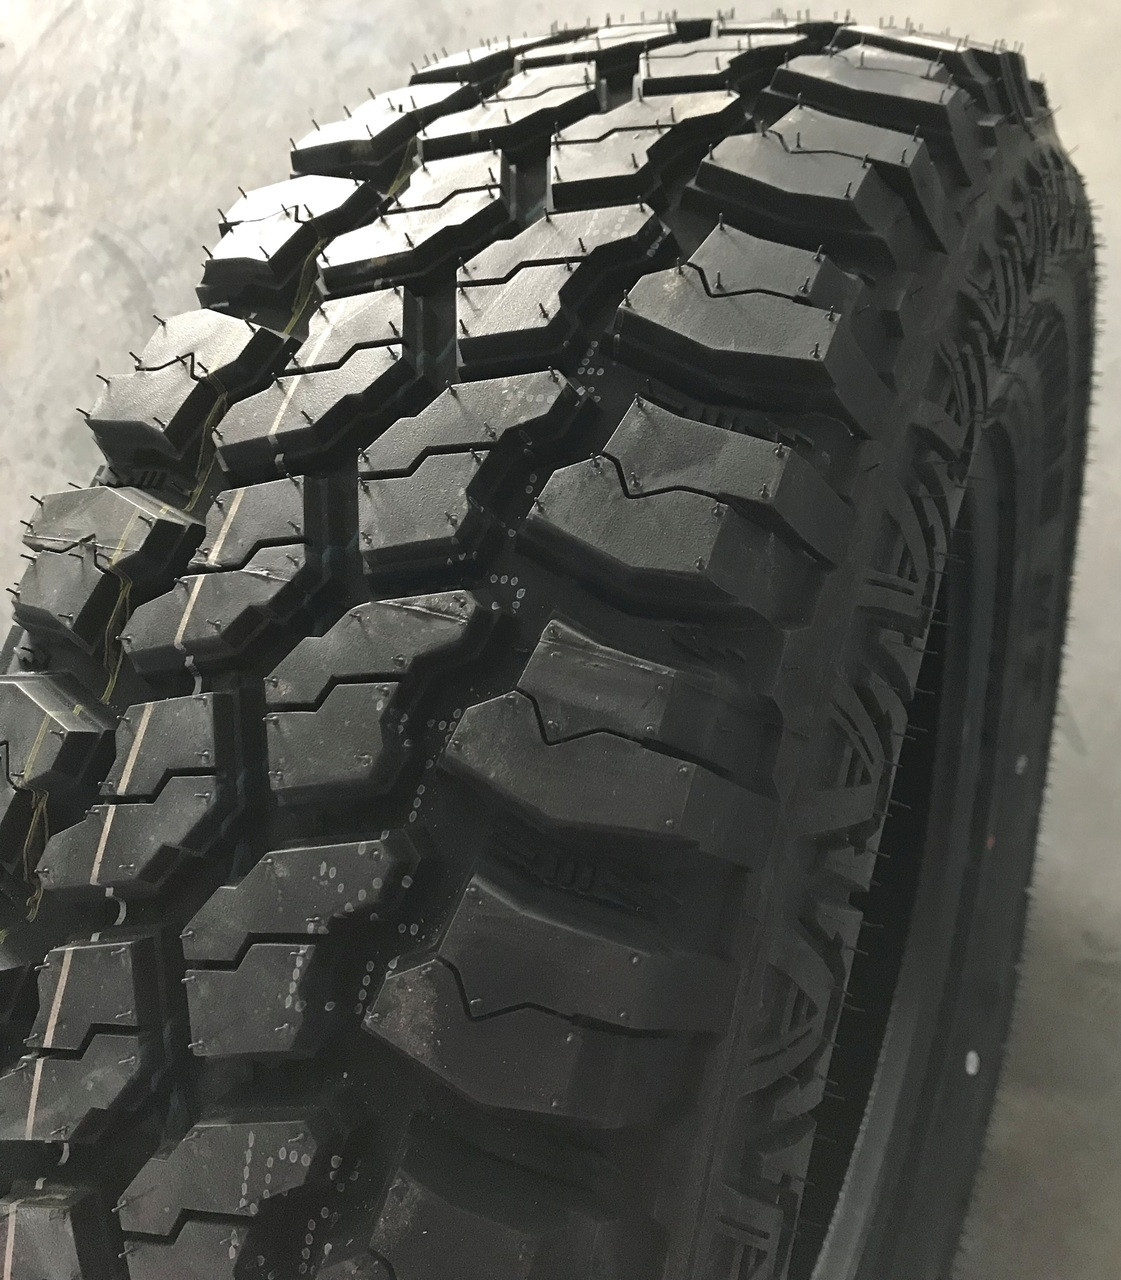 New Tire 37 12.50 20 Mud Claw Extreme MT 12 Ply LT37x12.50R20